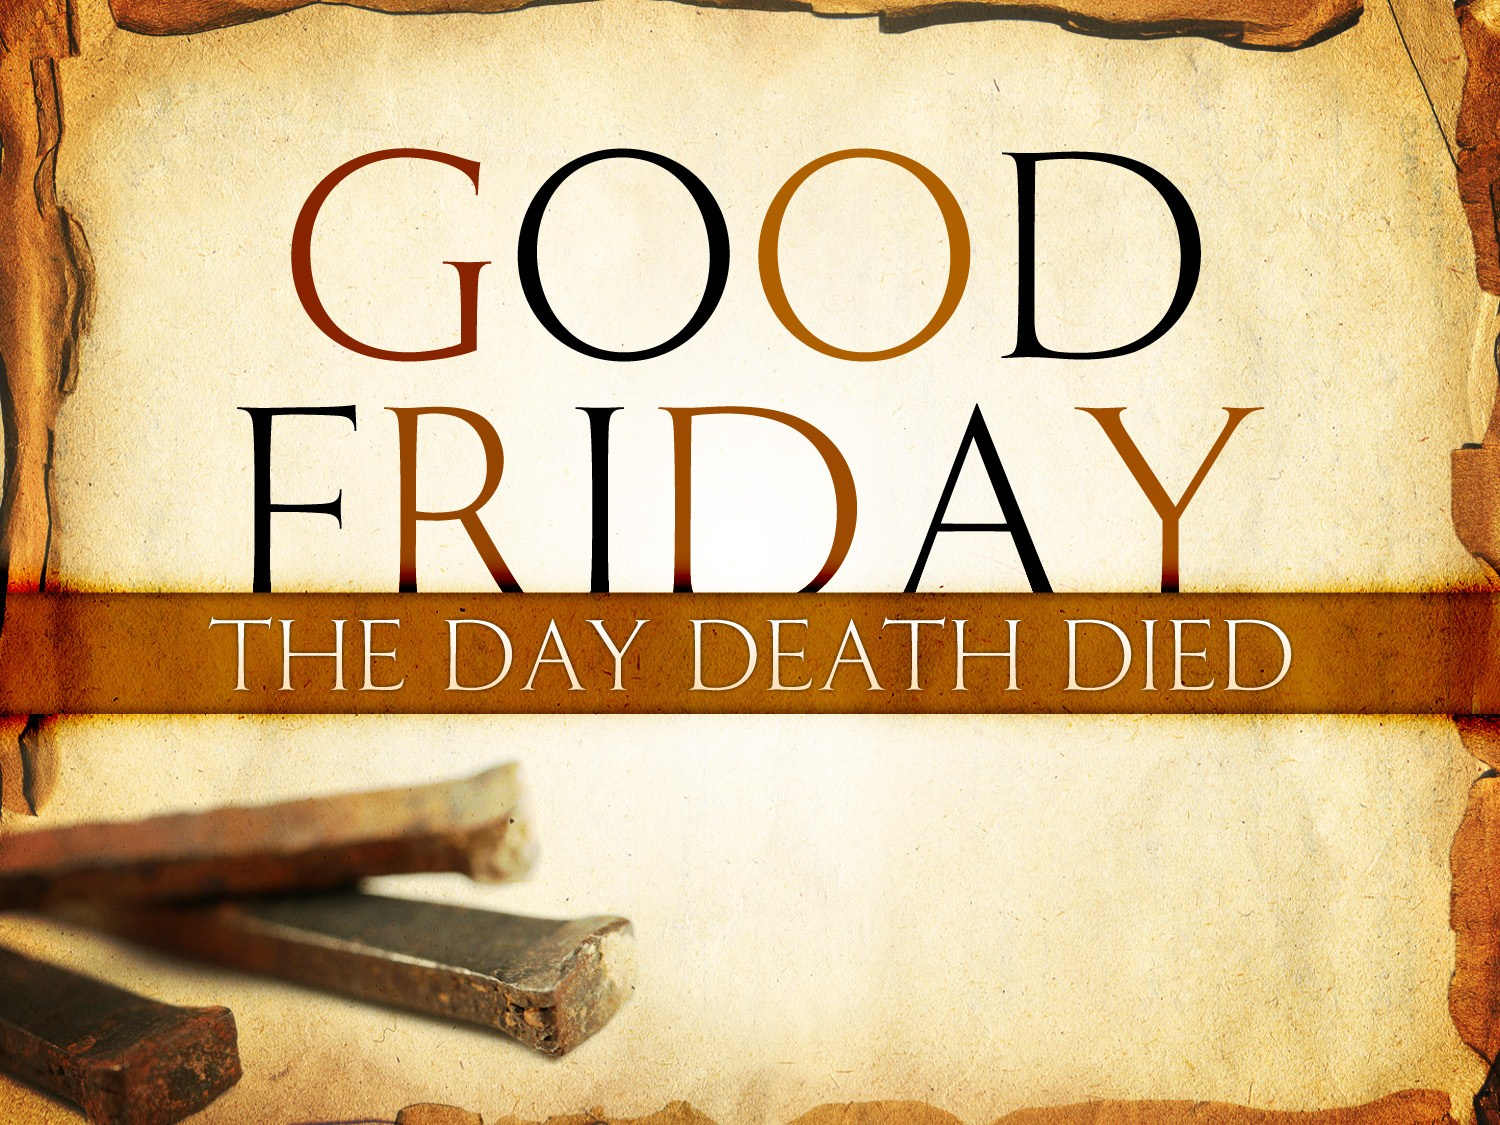 Good Friday Prayers Songs Hd Video Bible Verses Short Poems 2015